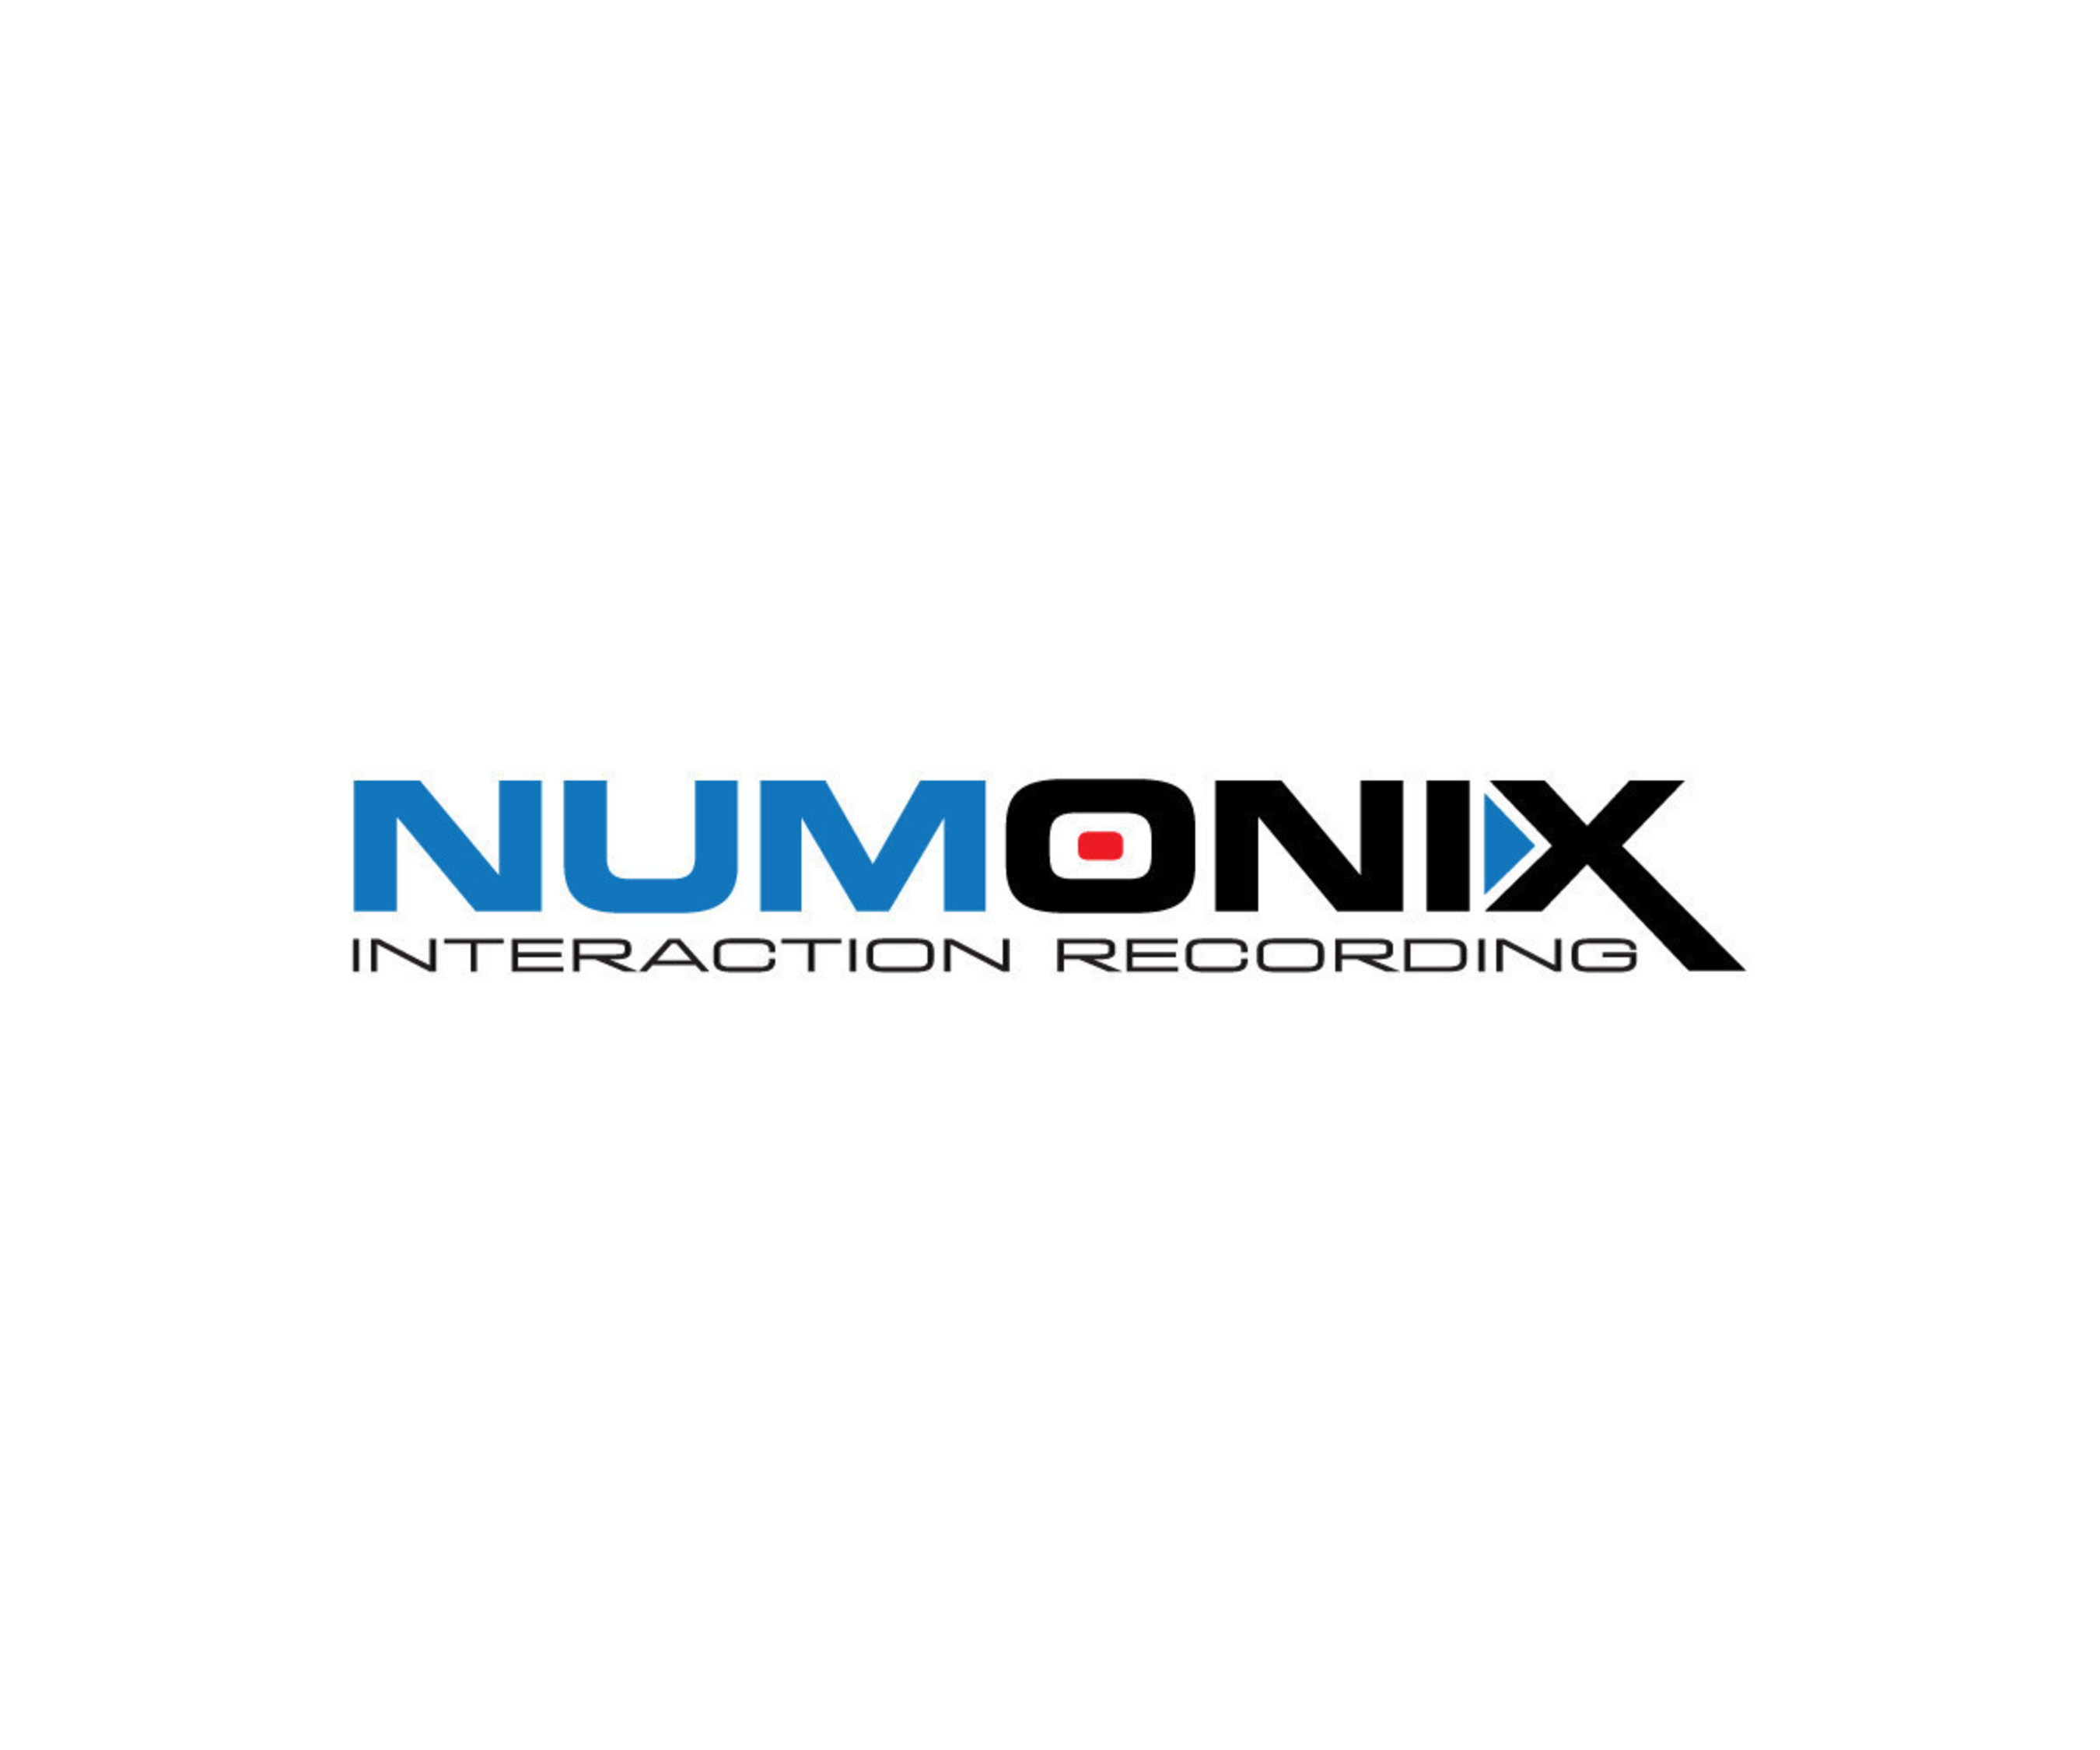 Numonix Receives Saddletree Research's Kachina Award for RECITE Interaction Recording for Microsoft Office 365